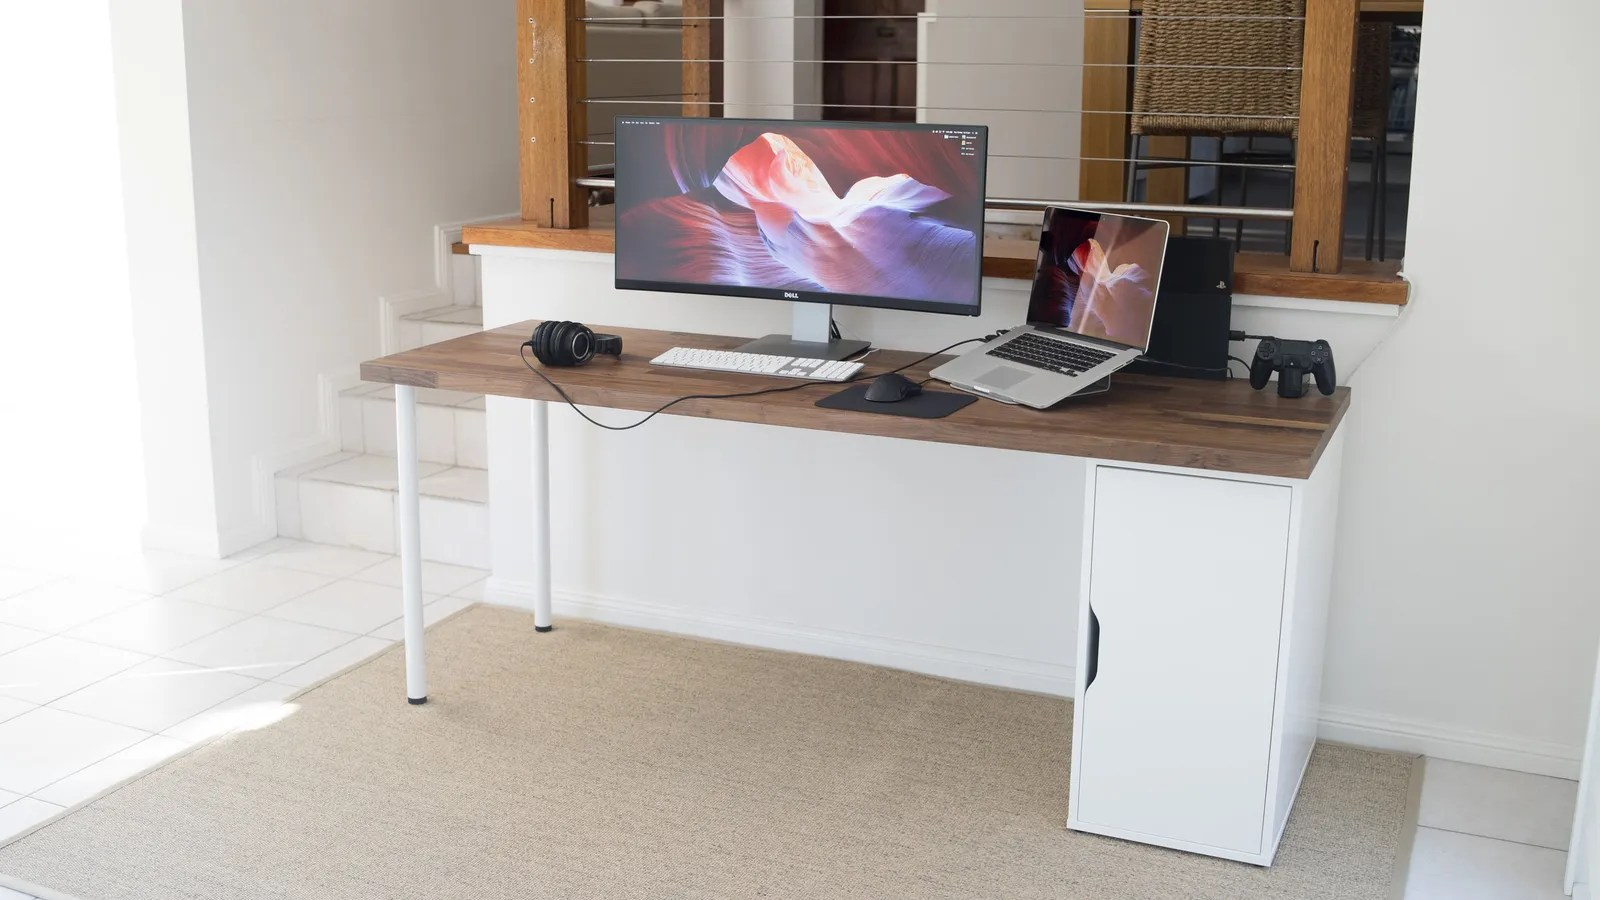 Ikea Karlby Desk The Minimalist's Work And Play Space